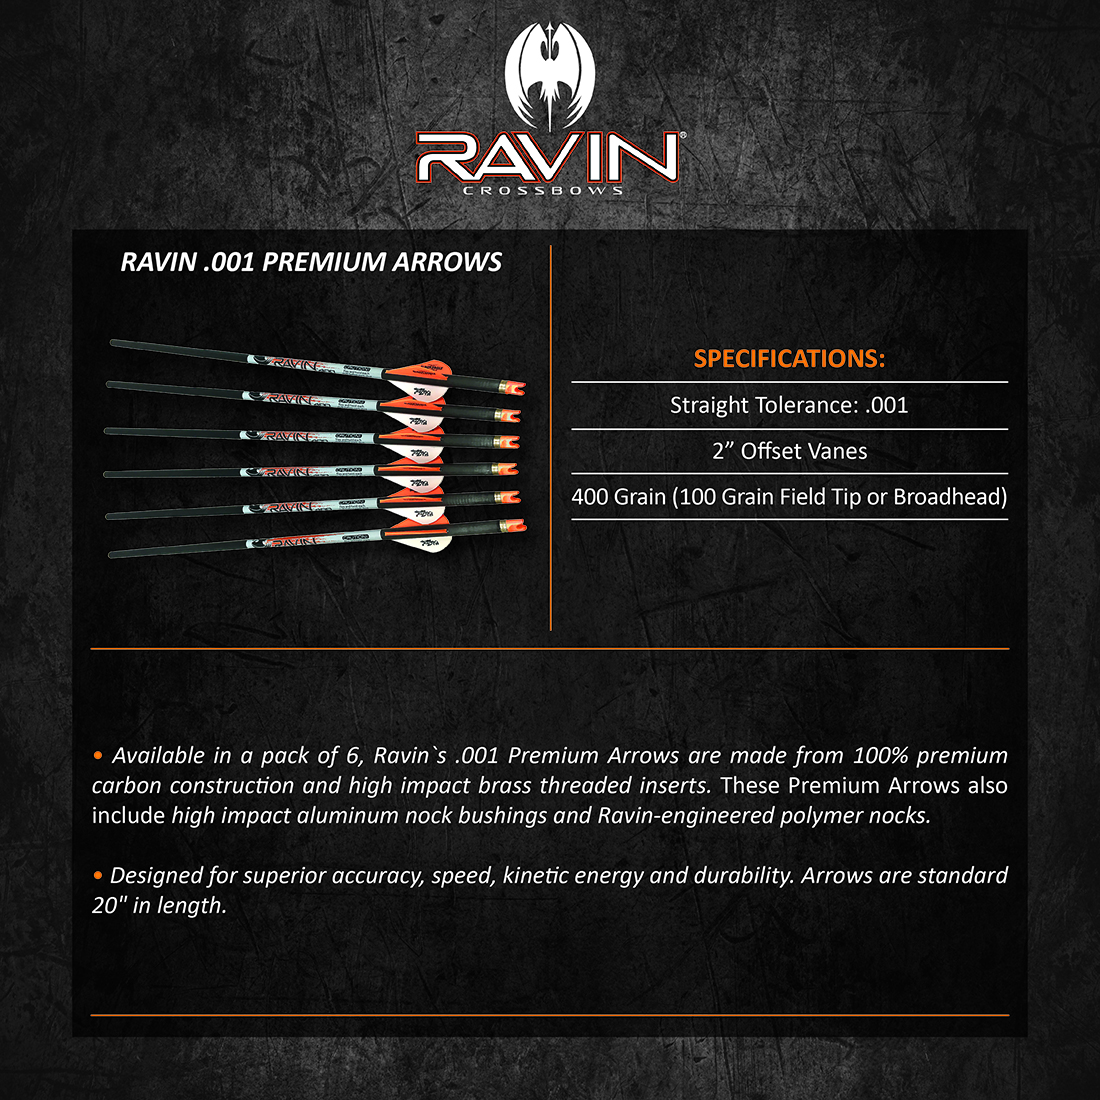 Ravin_001_Premium_Arrows_Product_Description